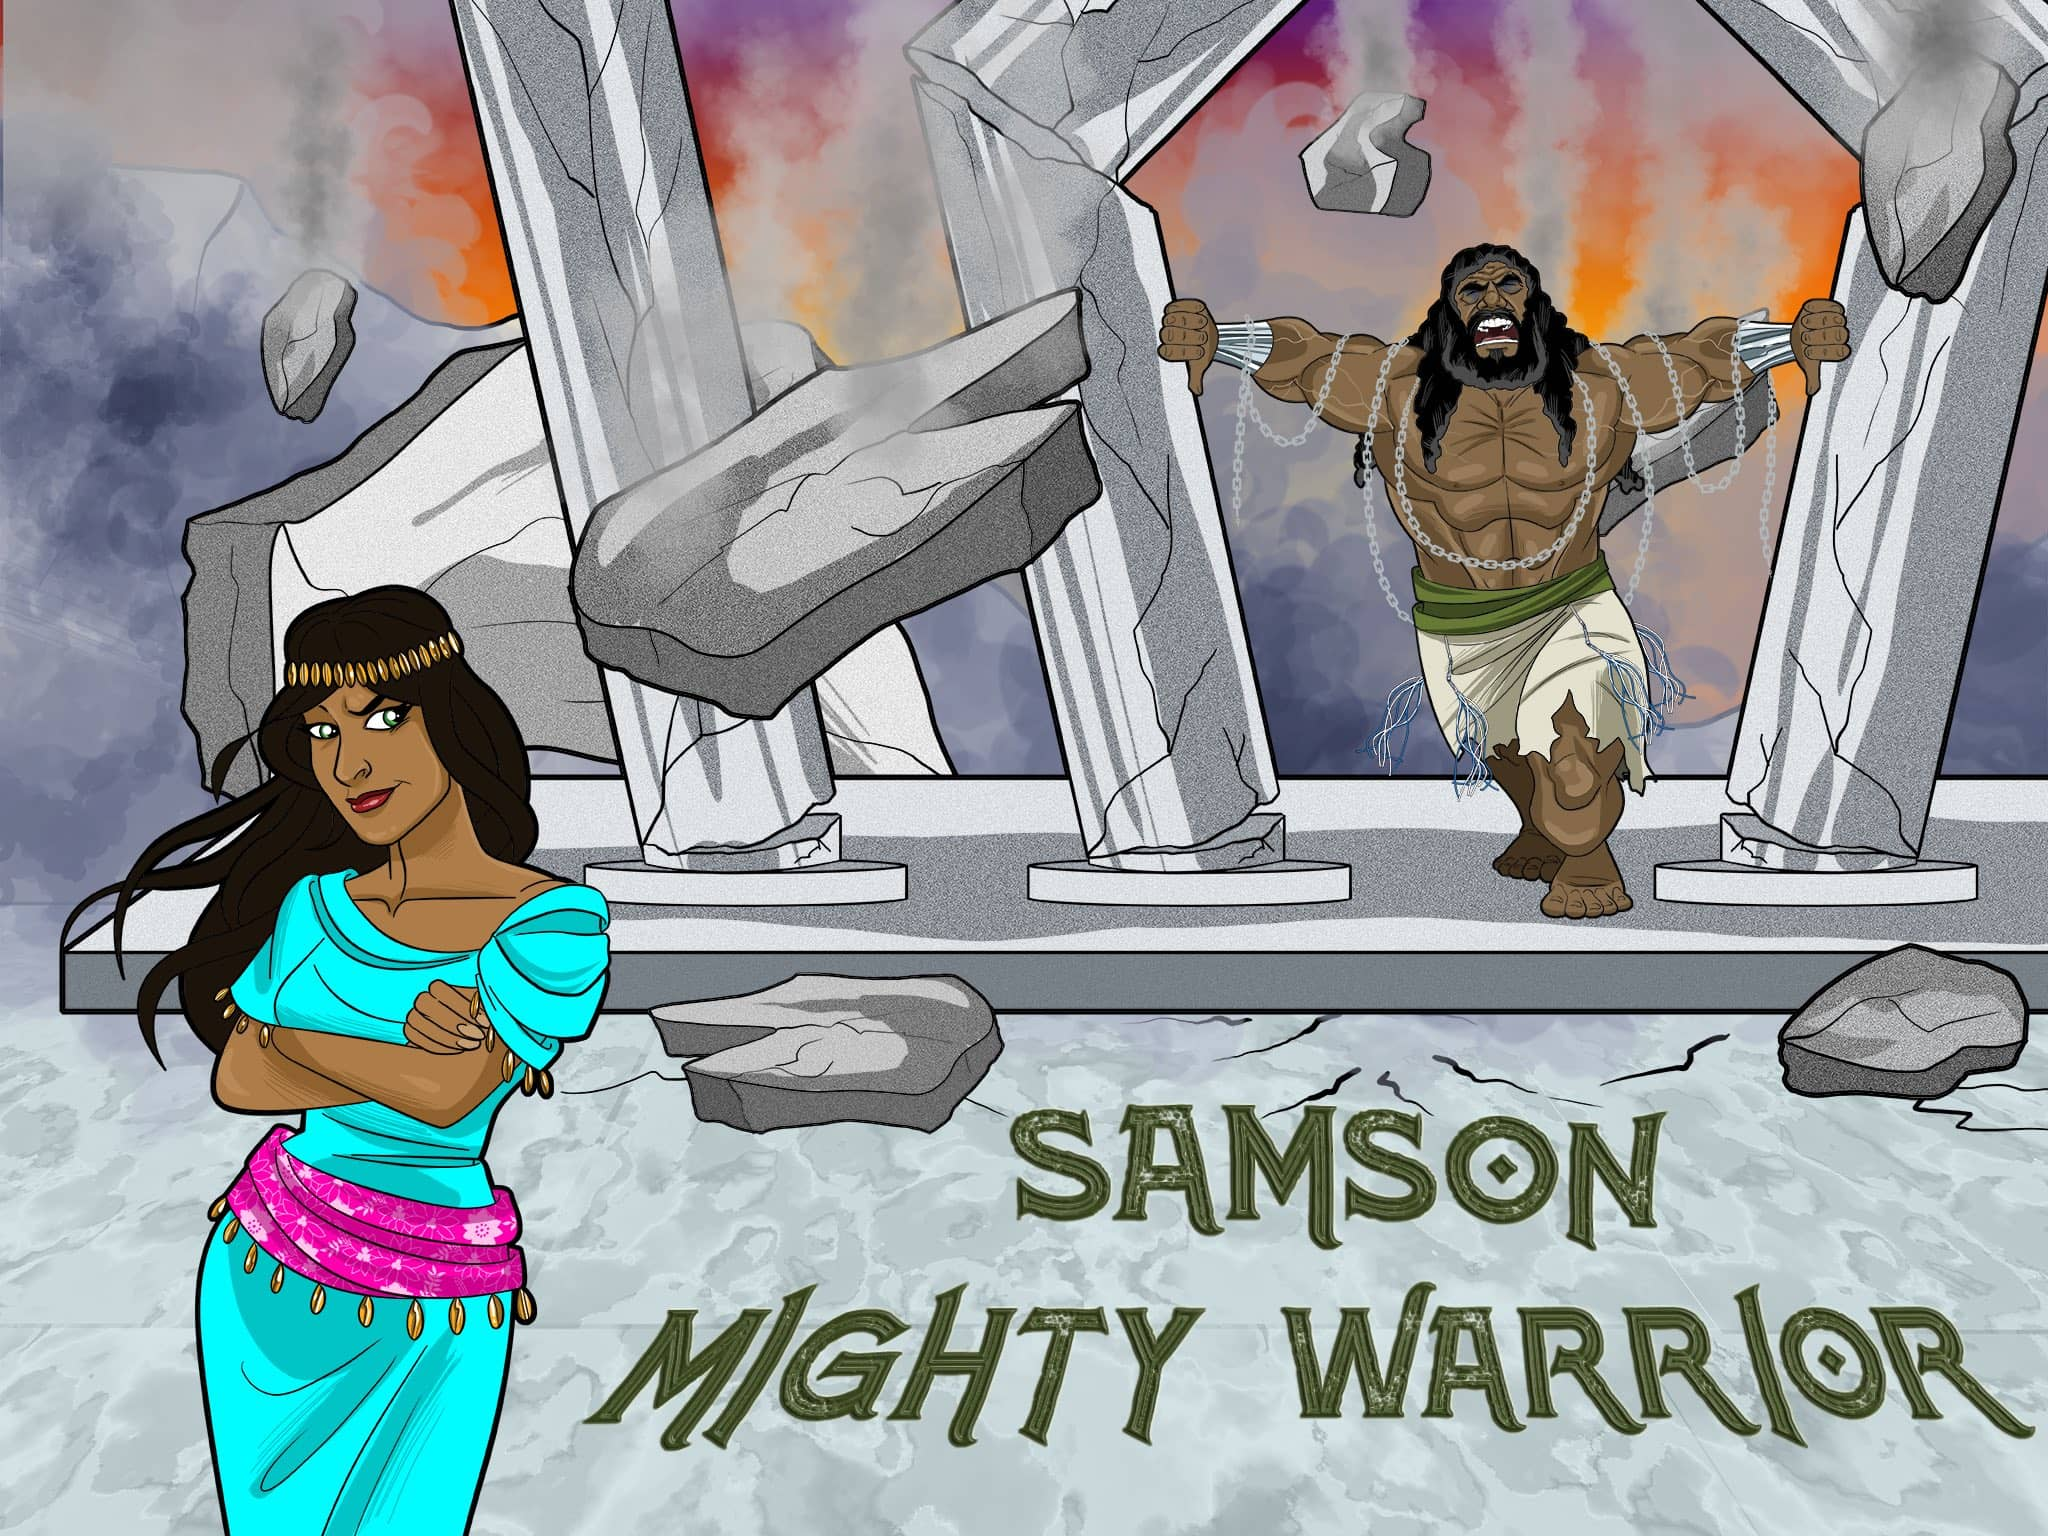 Samson Bible Story Amp Lesson Plans Free Download